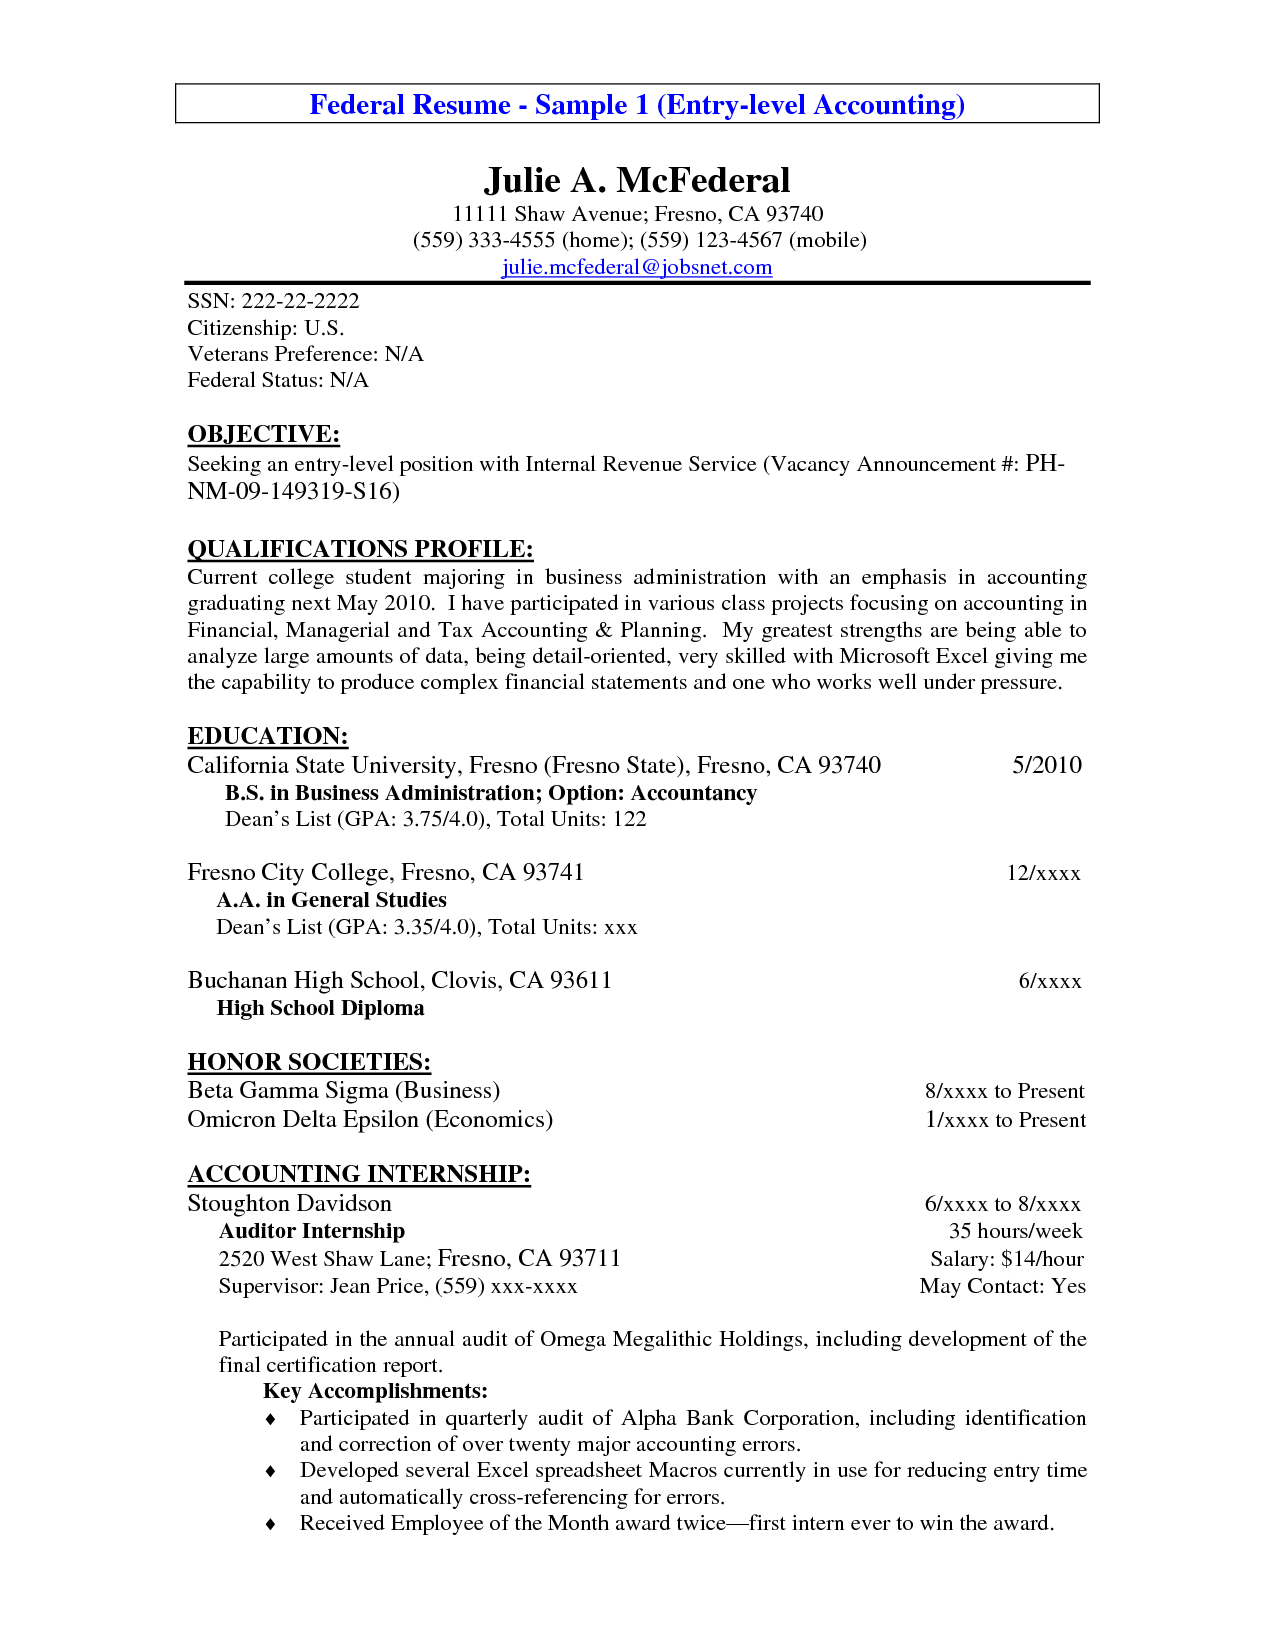 Accounting resume objectives read more httpwww accounting resume objectives read more httpsampleresumeobjectivesaccounting resume objectiveml altavistaventures